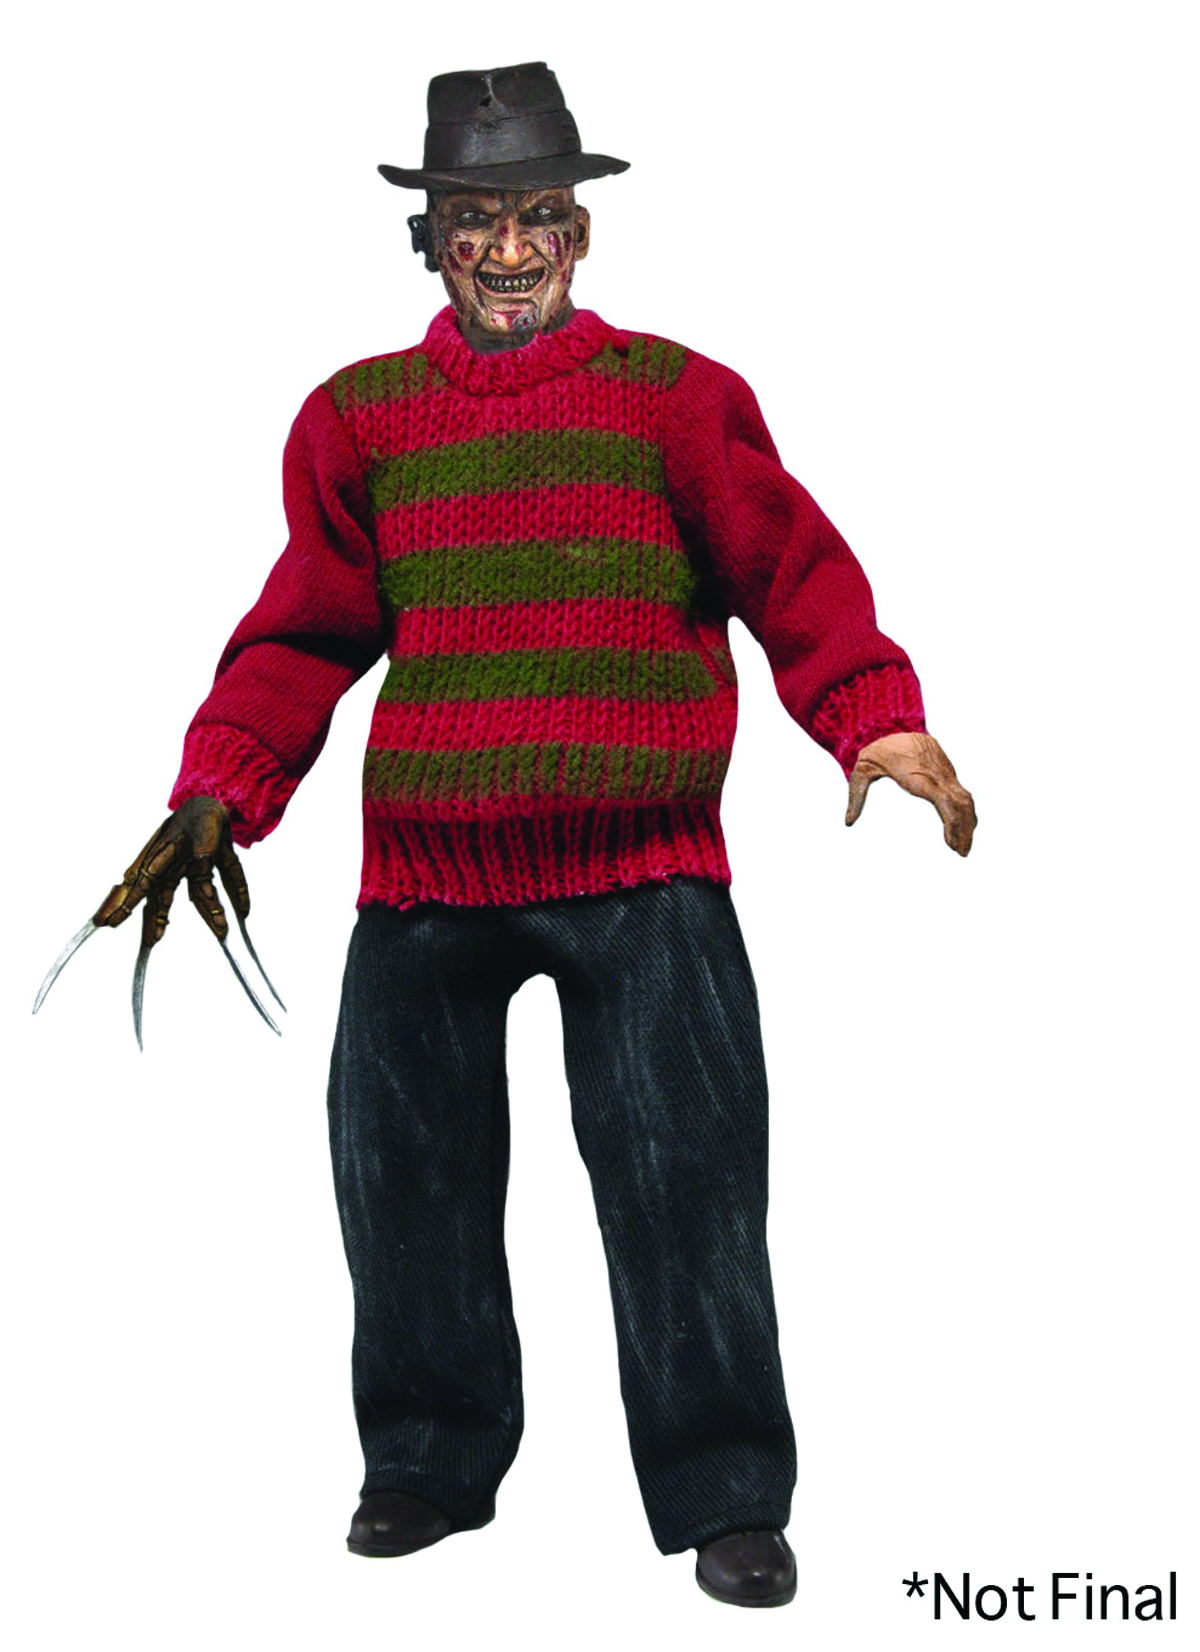 NIGHTMARE ON ELM ST FREDDY 8-IN ACTION DOLL